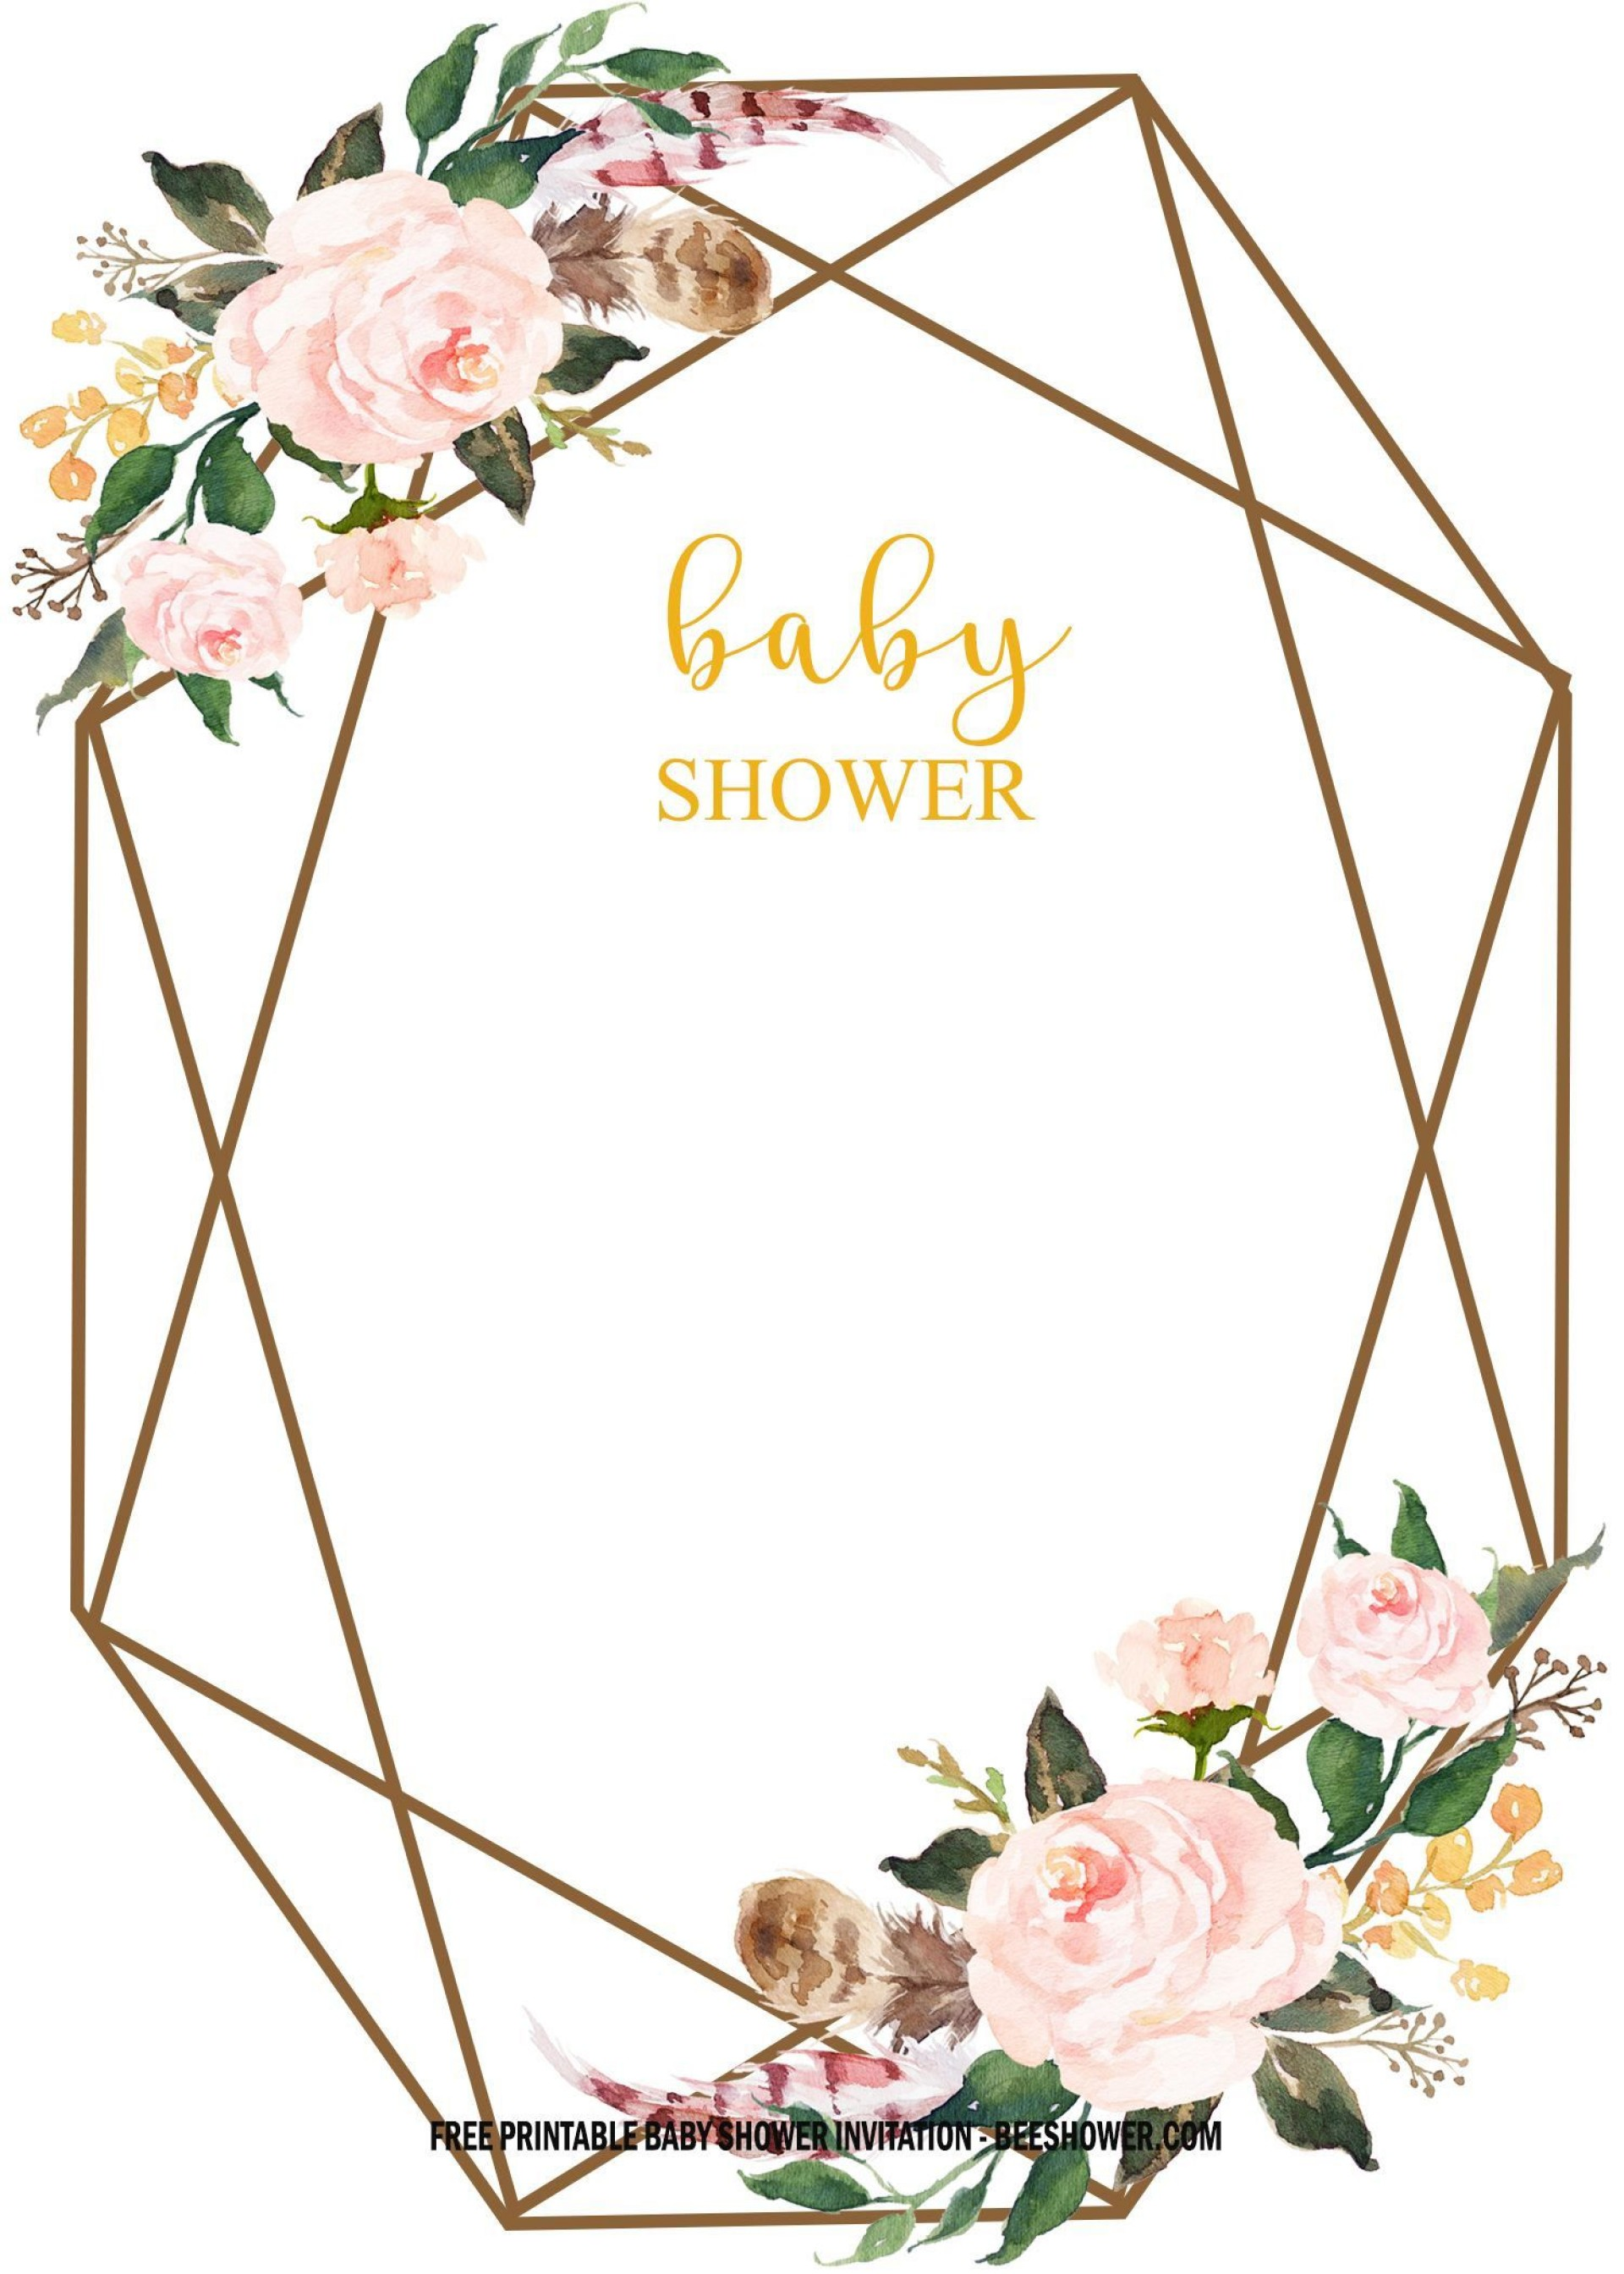 005 Marvelou Baby Shower Invitation Free Template Example  Templates Online Printable E-invitation Card Design Download1920